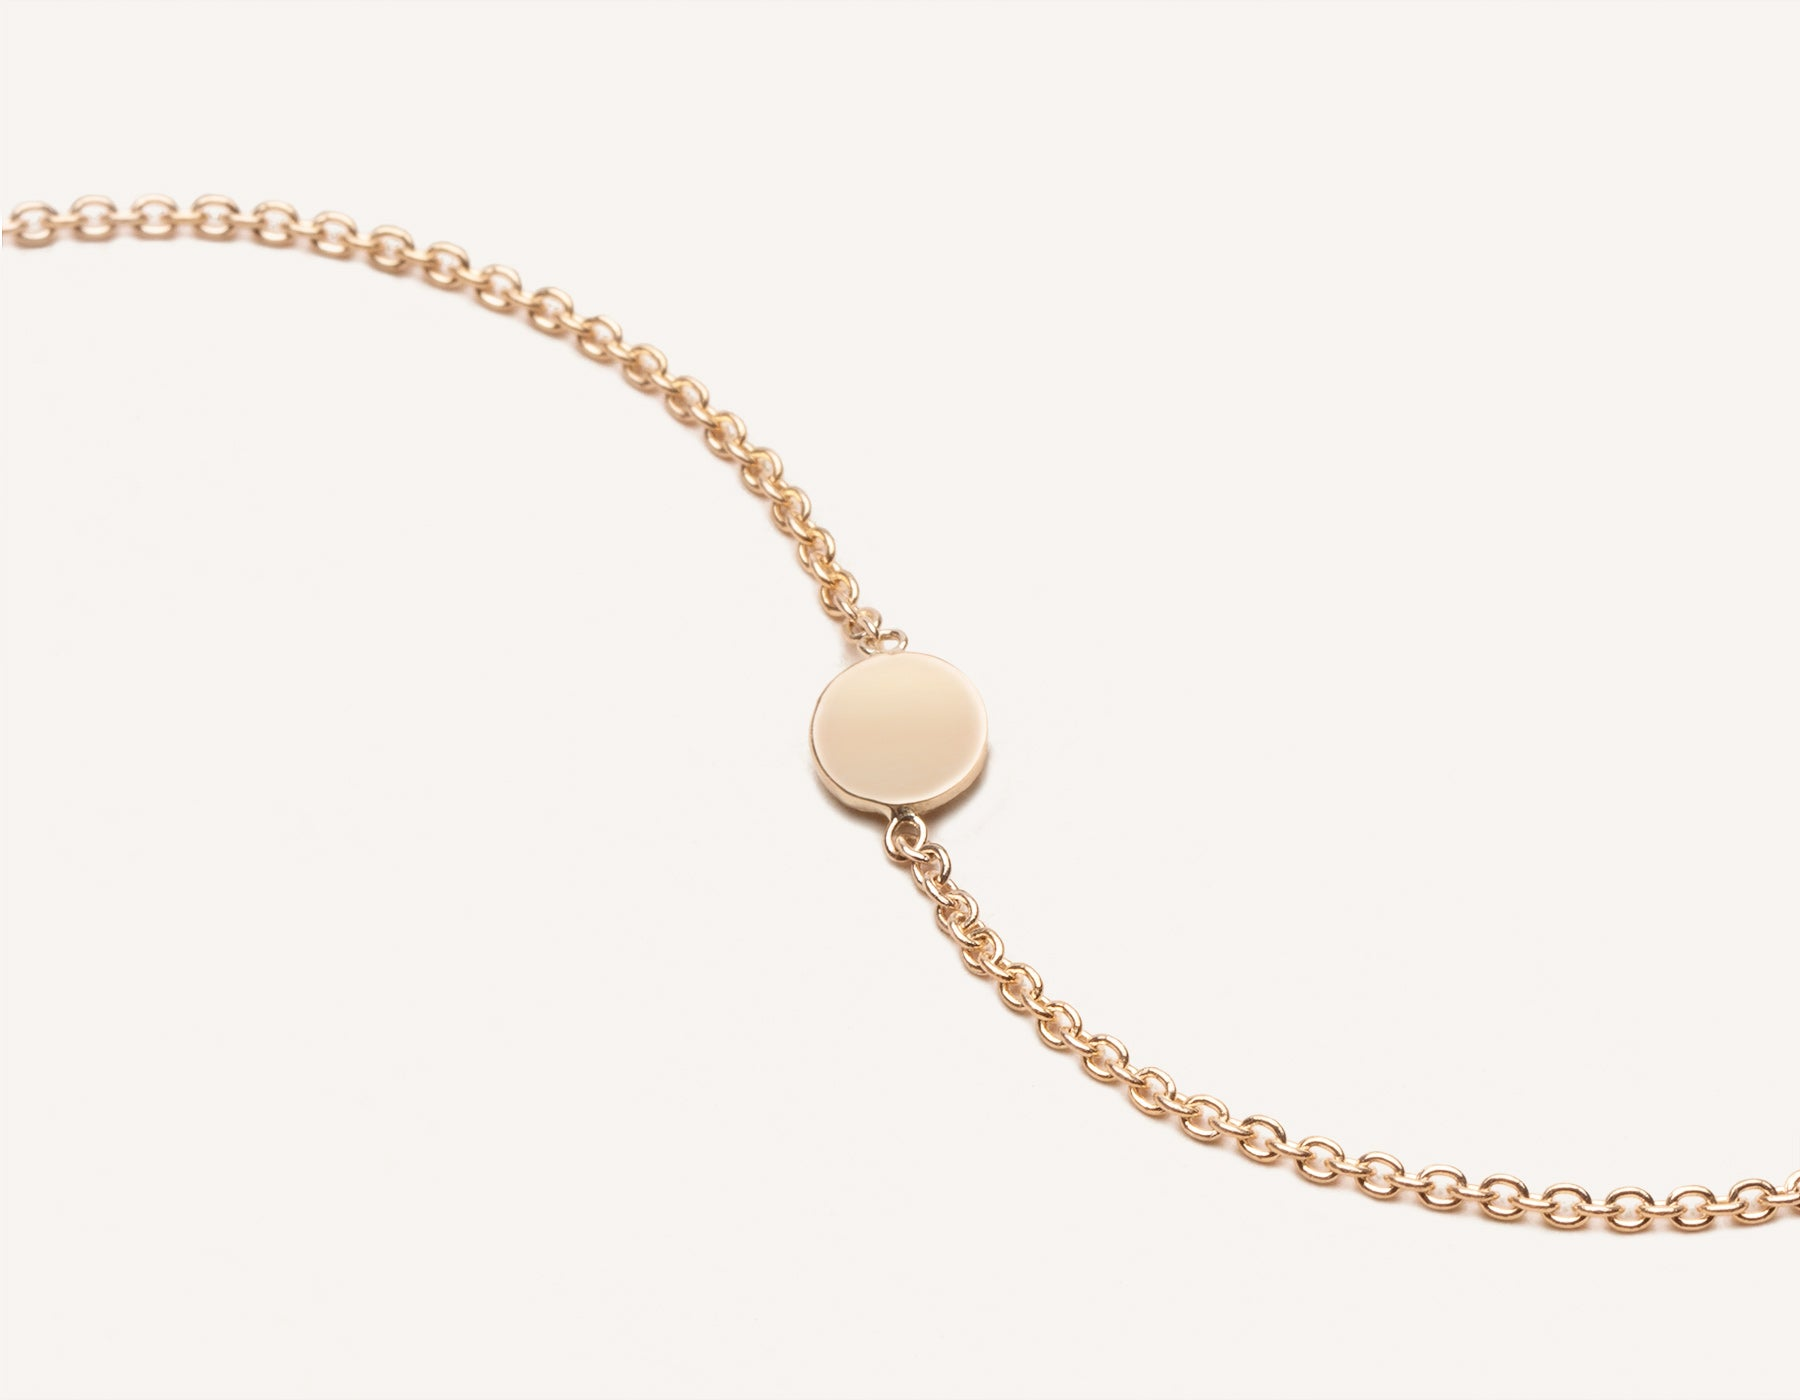 Customizable simple Initial Bracelet 14k solid gold round disk dainty chain Vrai and Oro, 14K Rose Gold